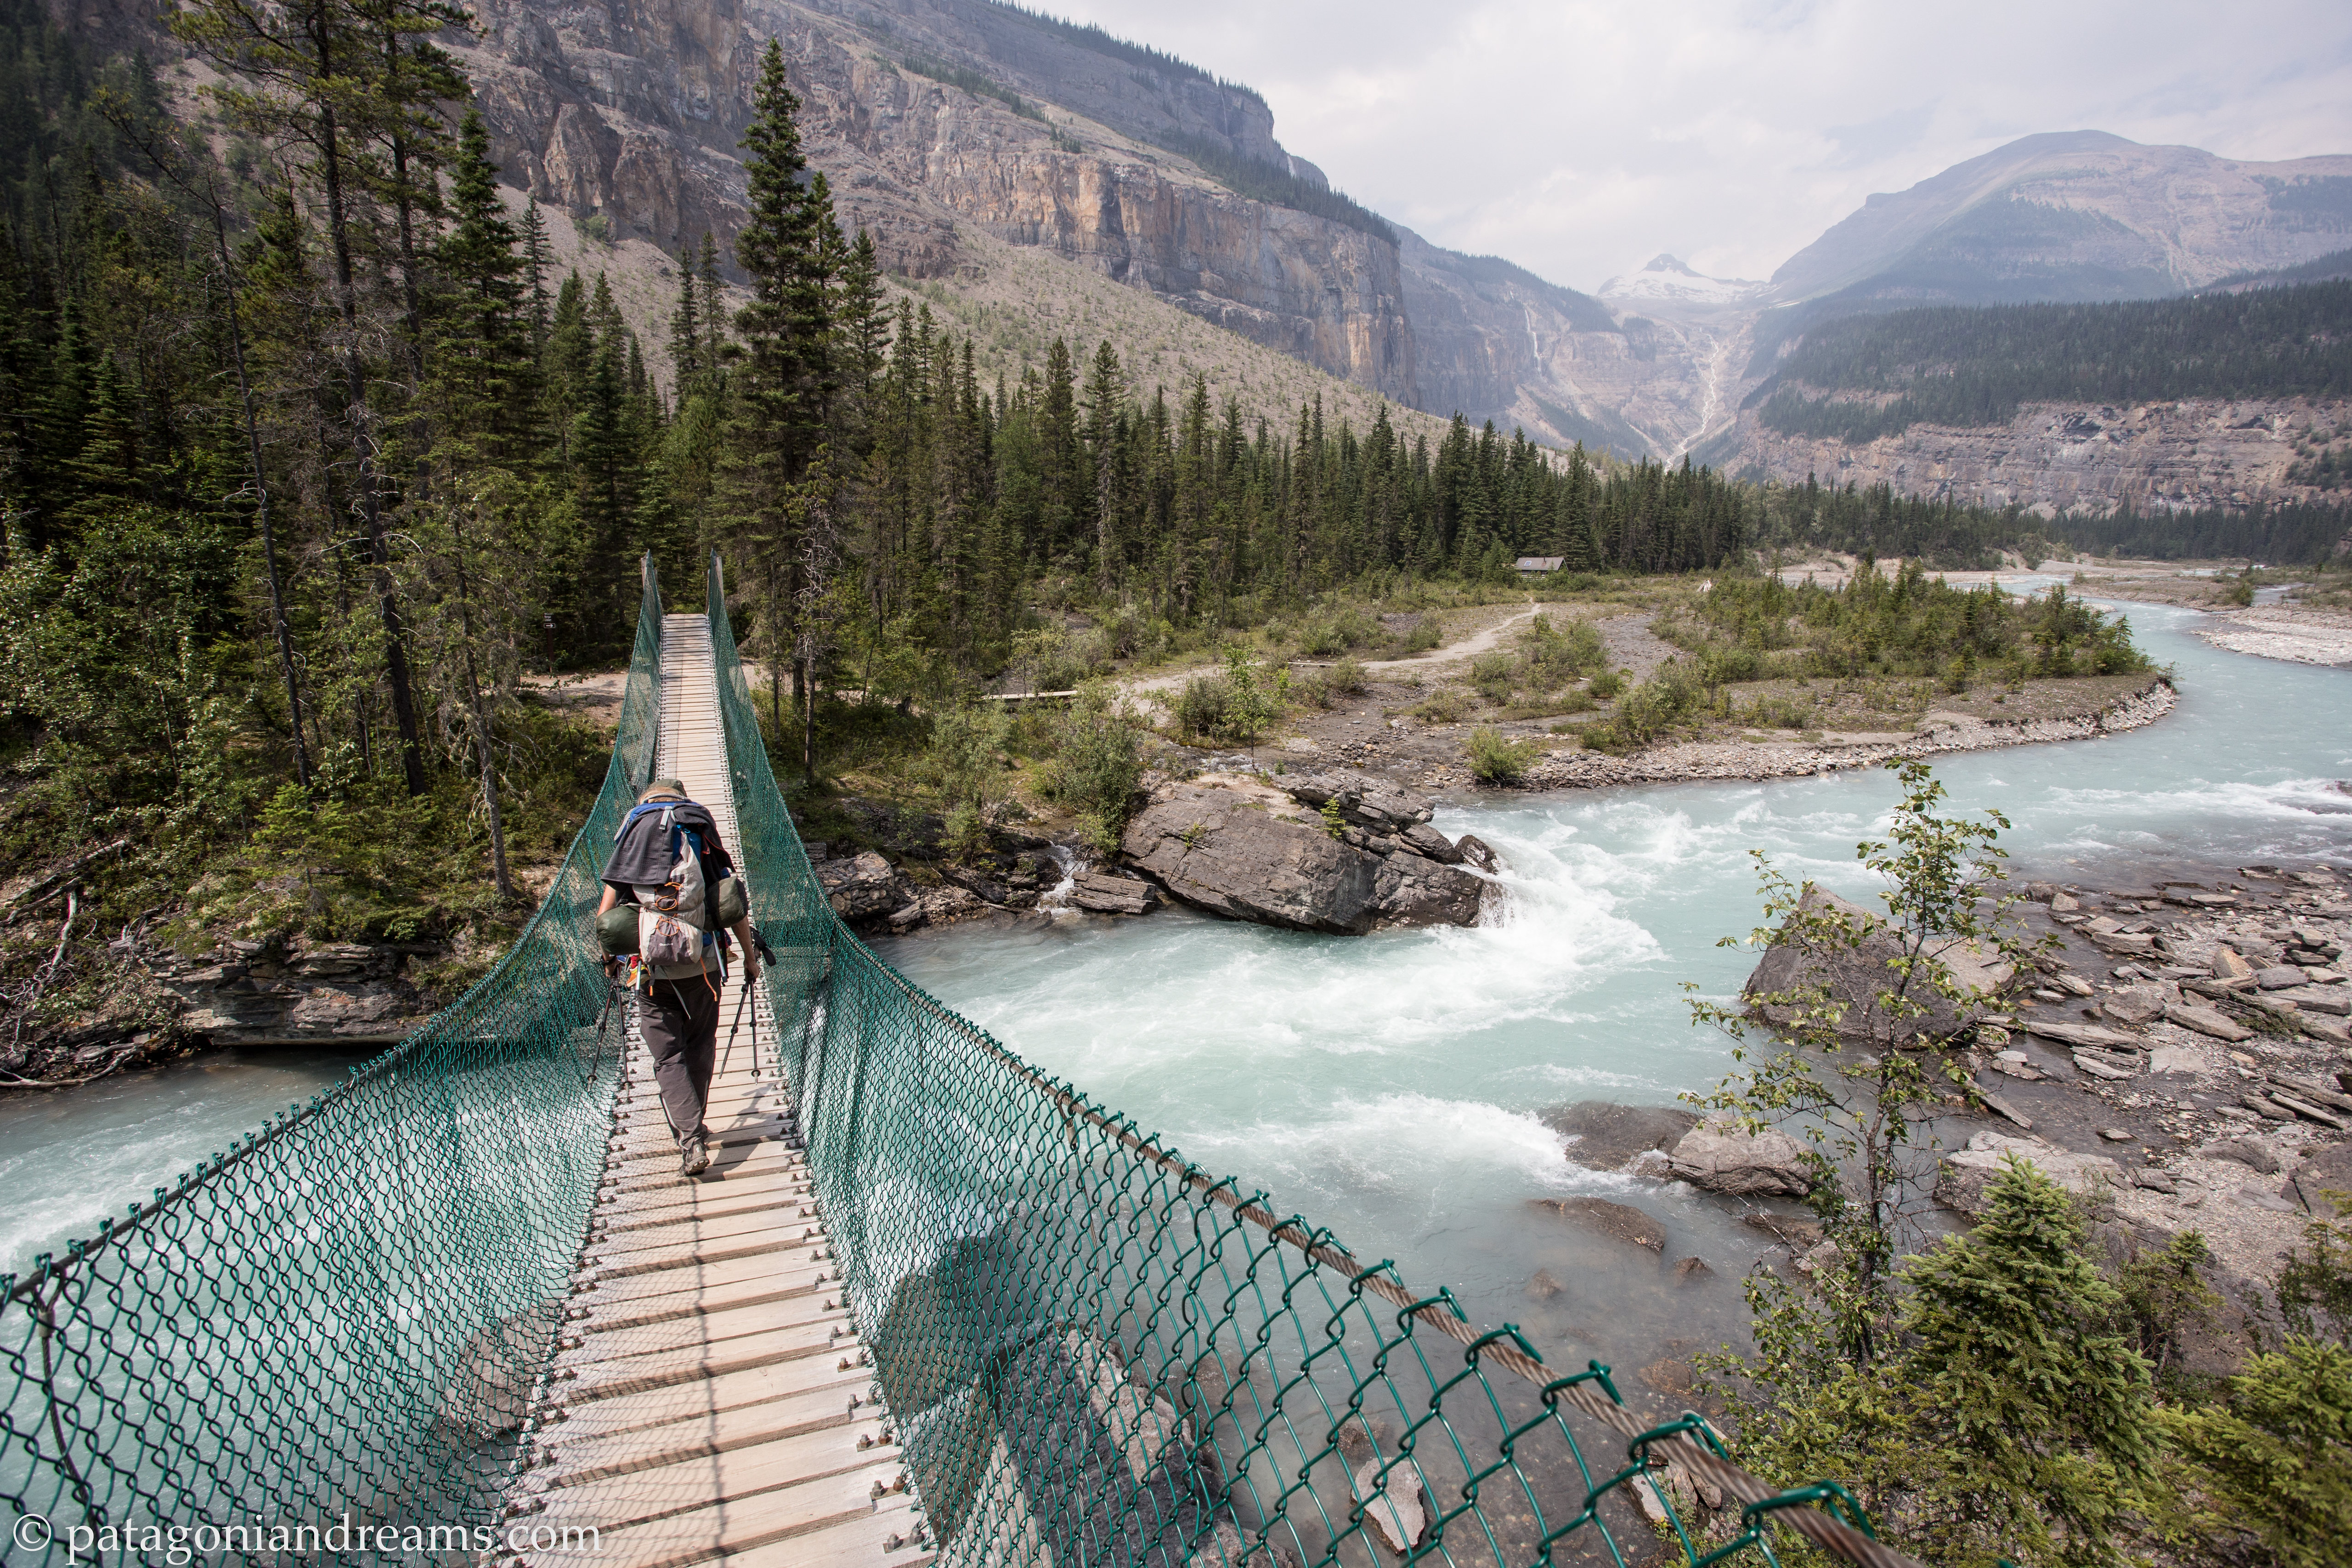 Crossing the suspension bridge near the Whitehorn campground in the Valley of a thousand falls.